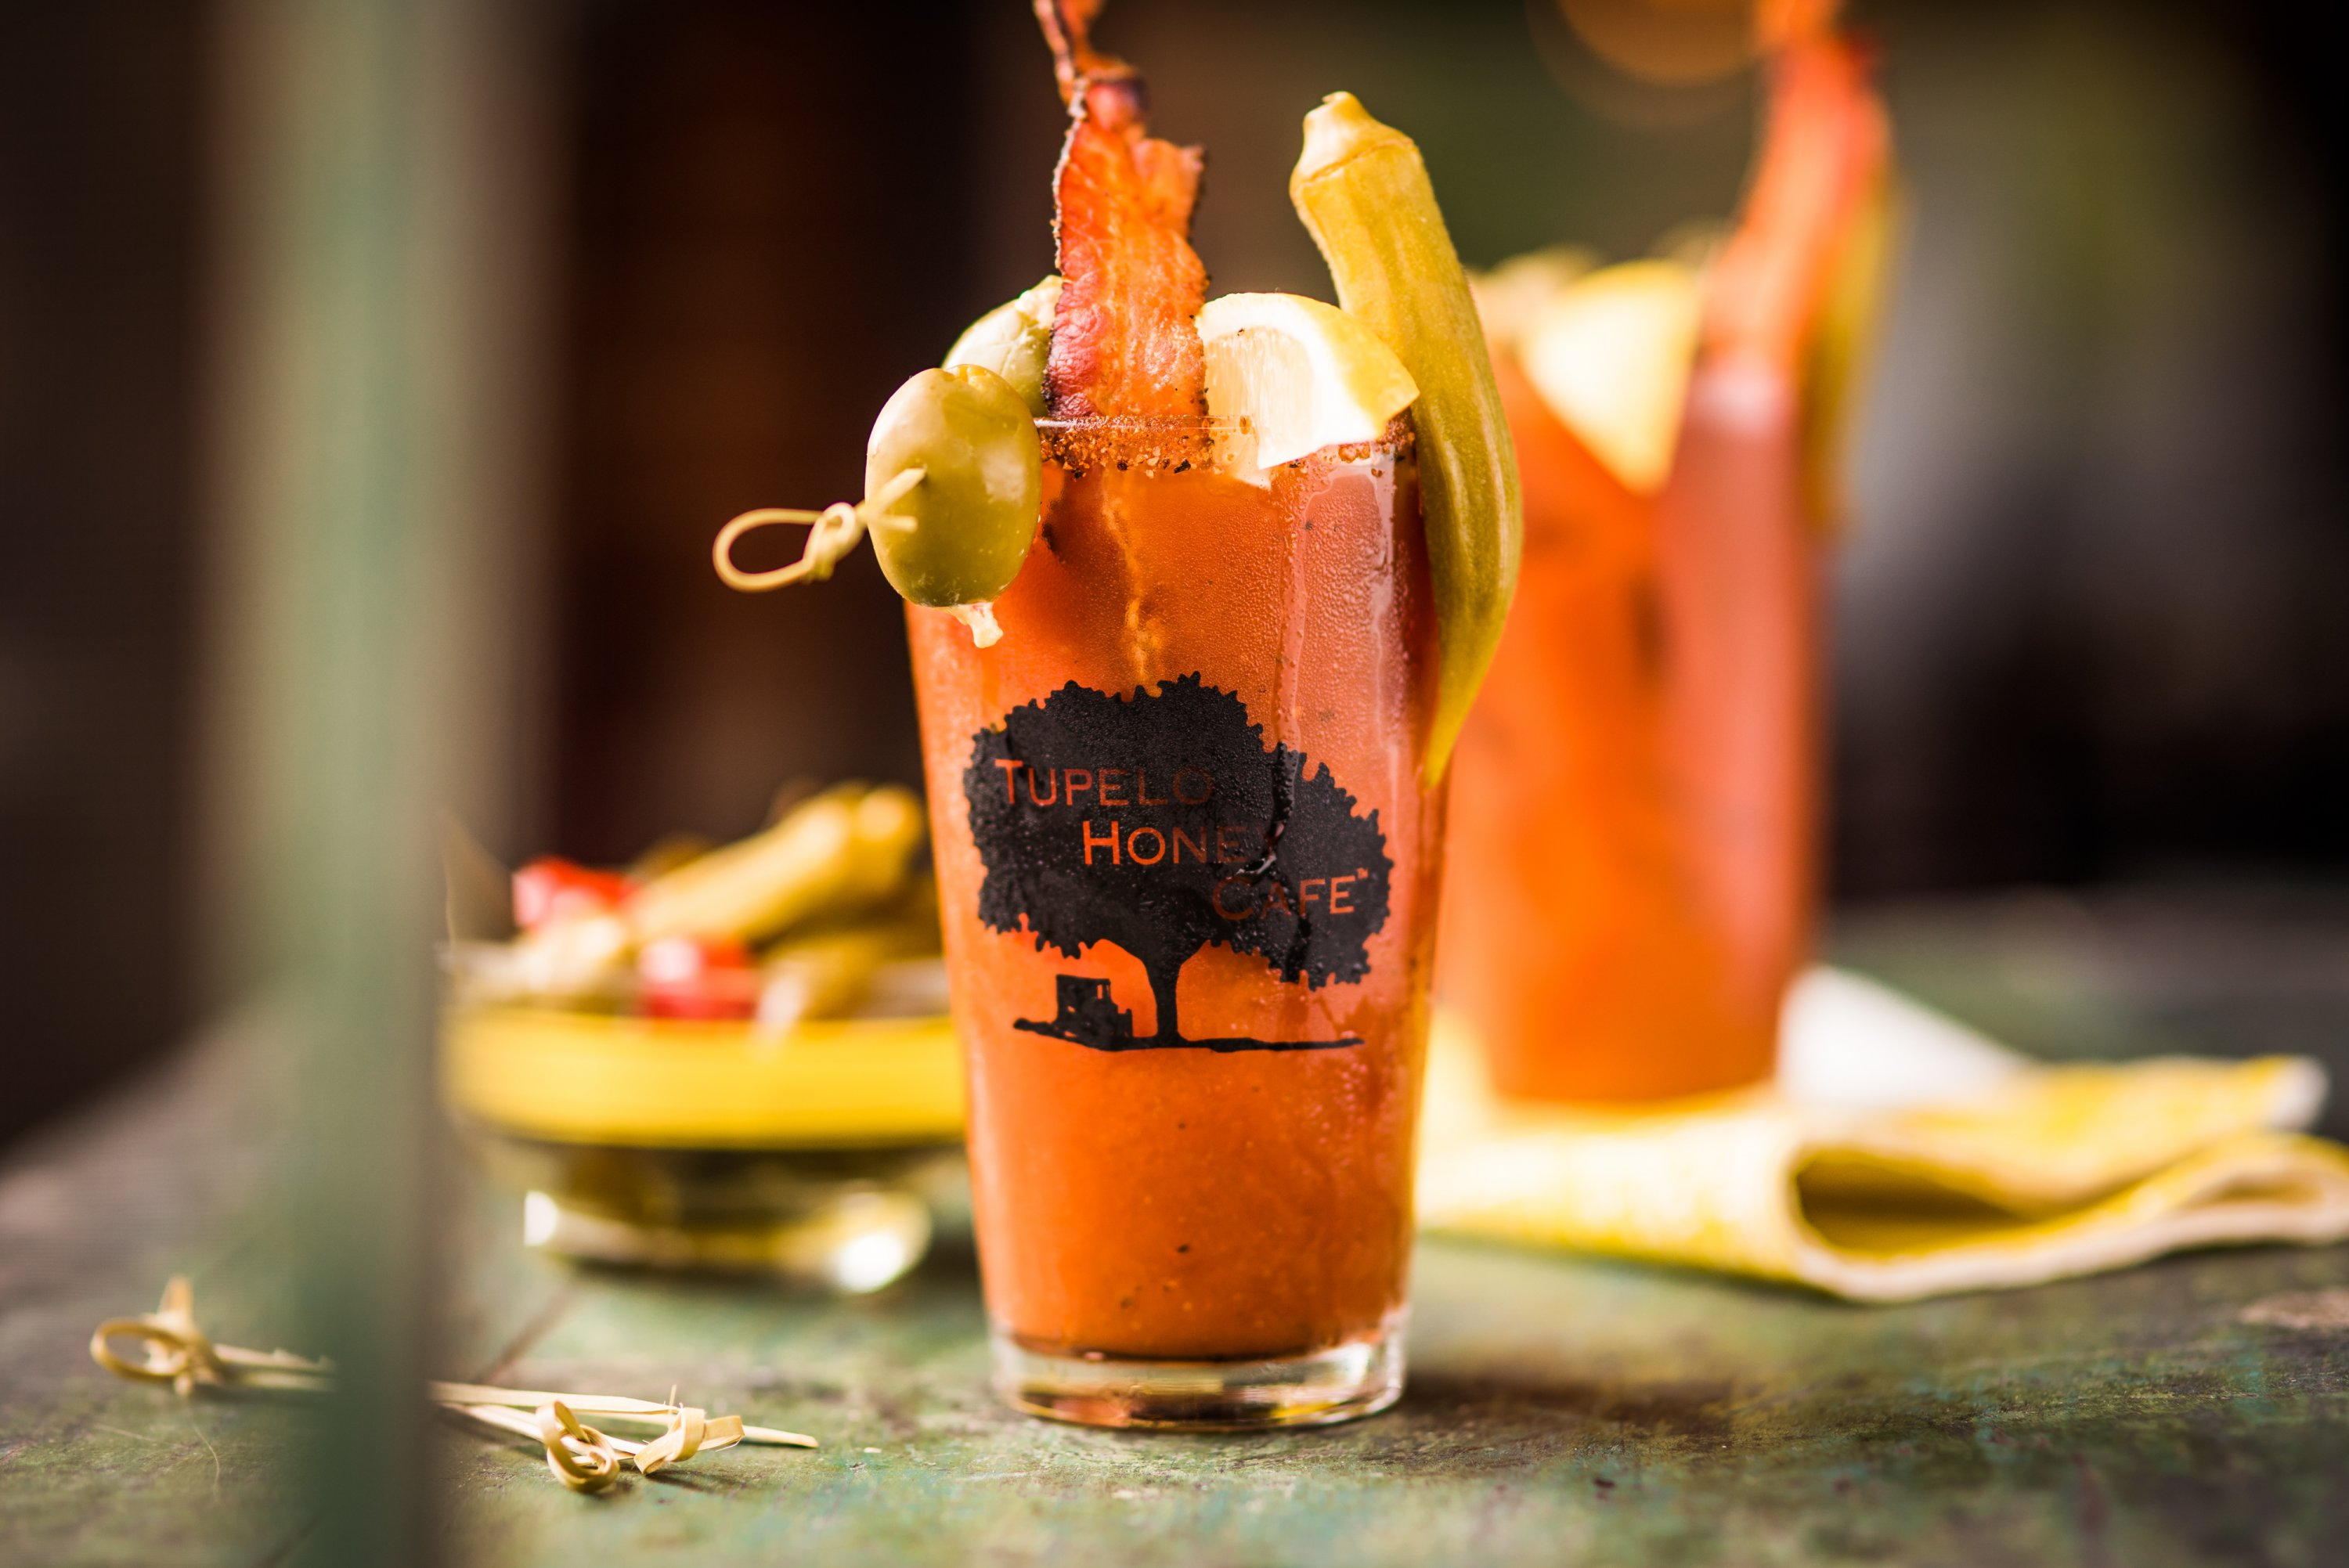 The bloody mary at Tupelo Honey. Photograph courtesy of Tupelo Honey.